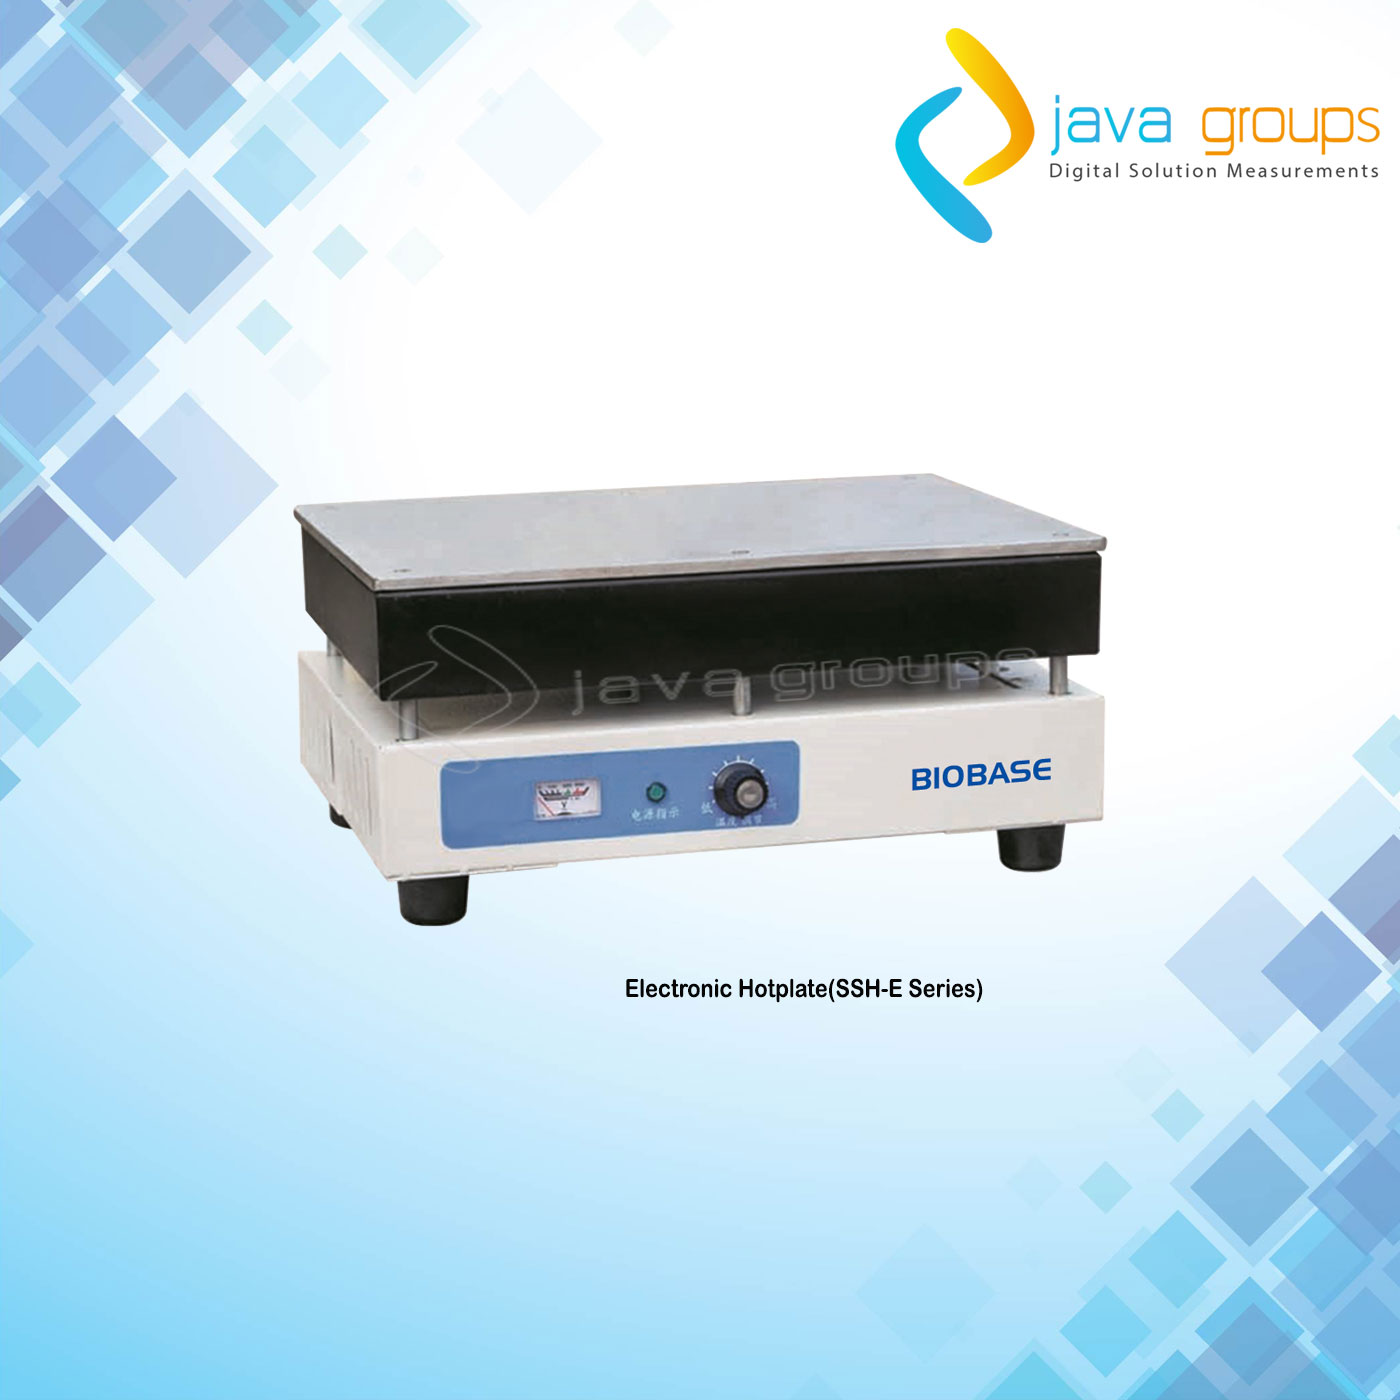 Alat Electronic & Digital Hotplate Biobase Series